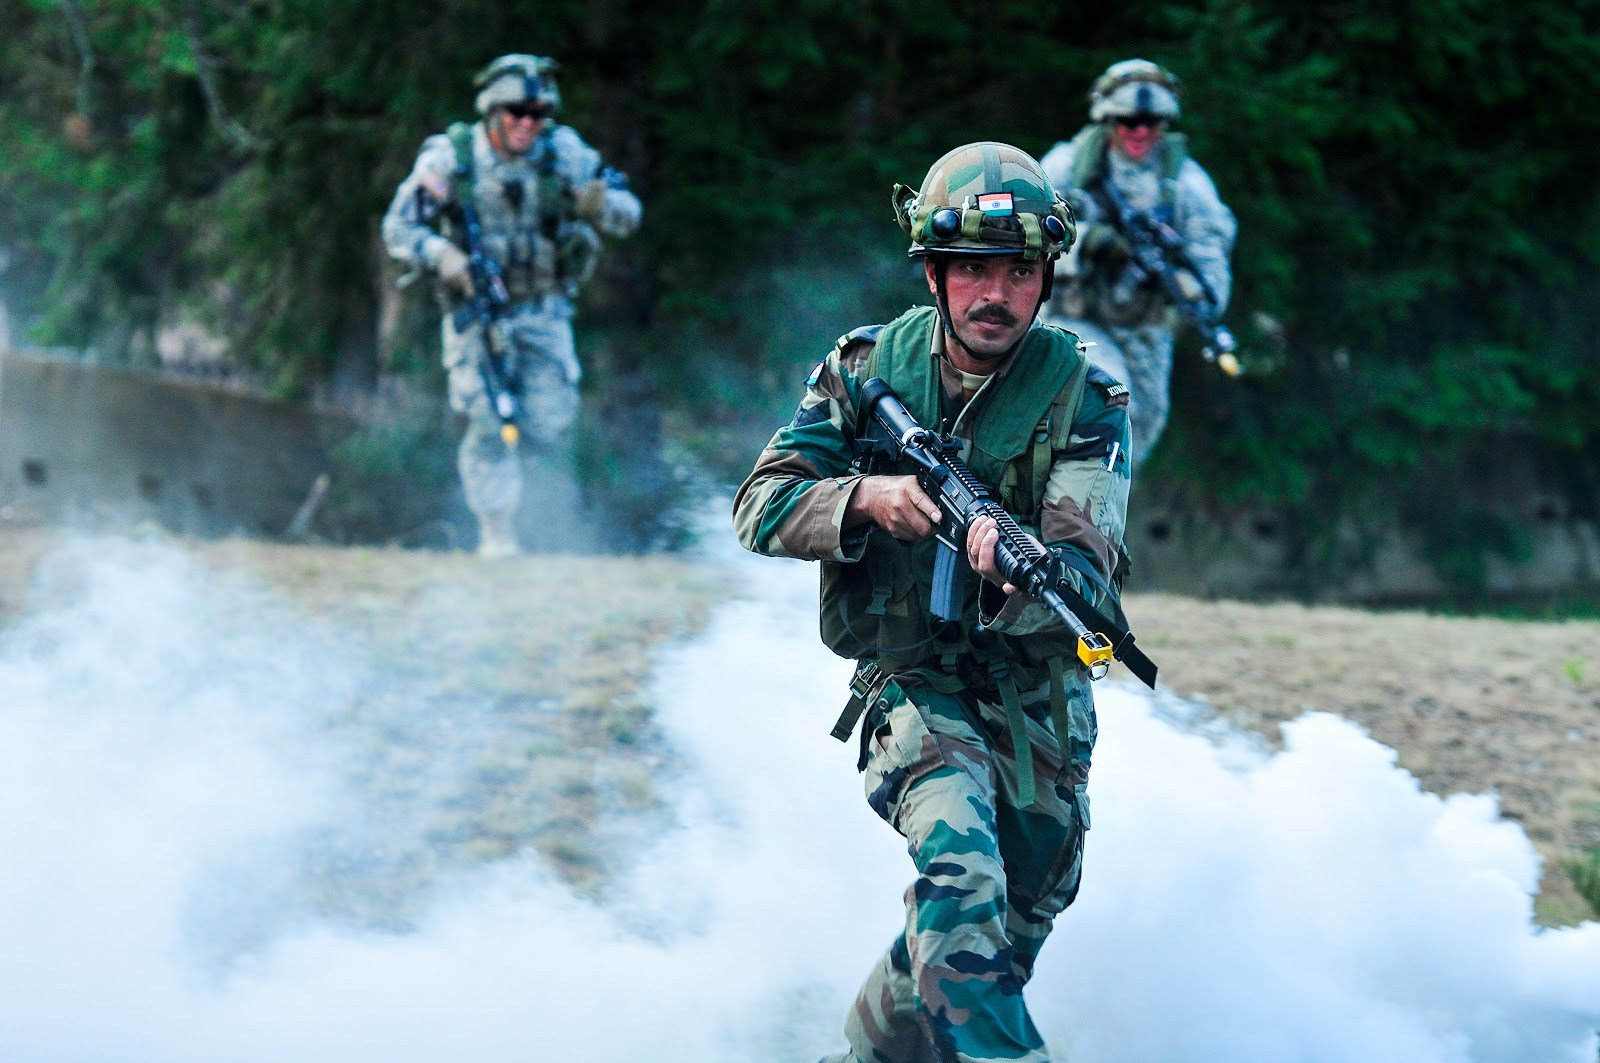 Indian Army Photos Hd Wallpaper Indian Army Gd Book 579215 Hd Wallpaper Backgrounds Download